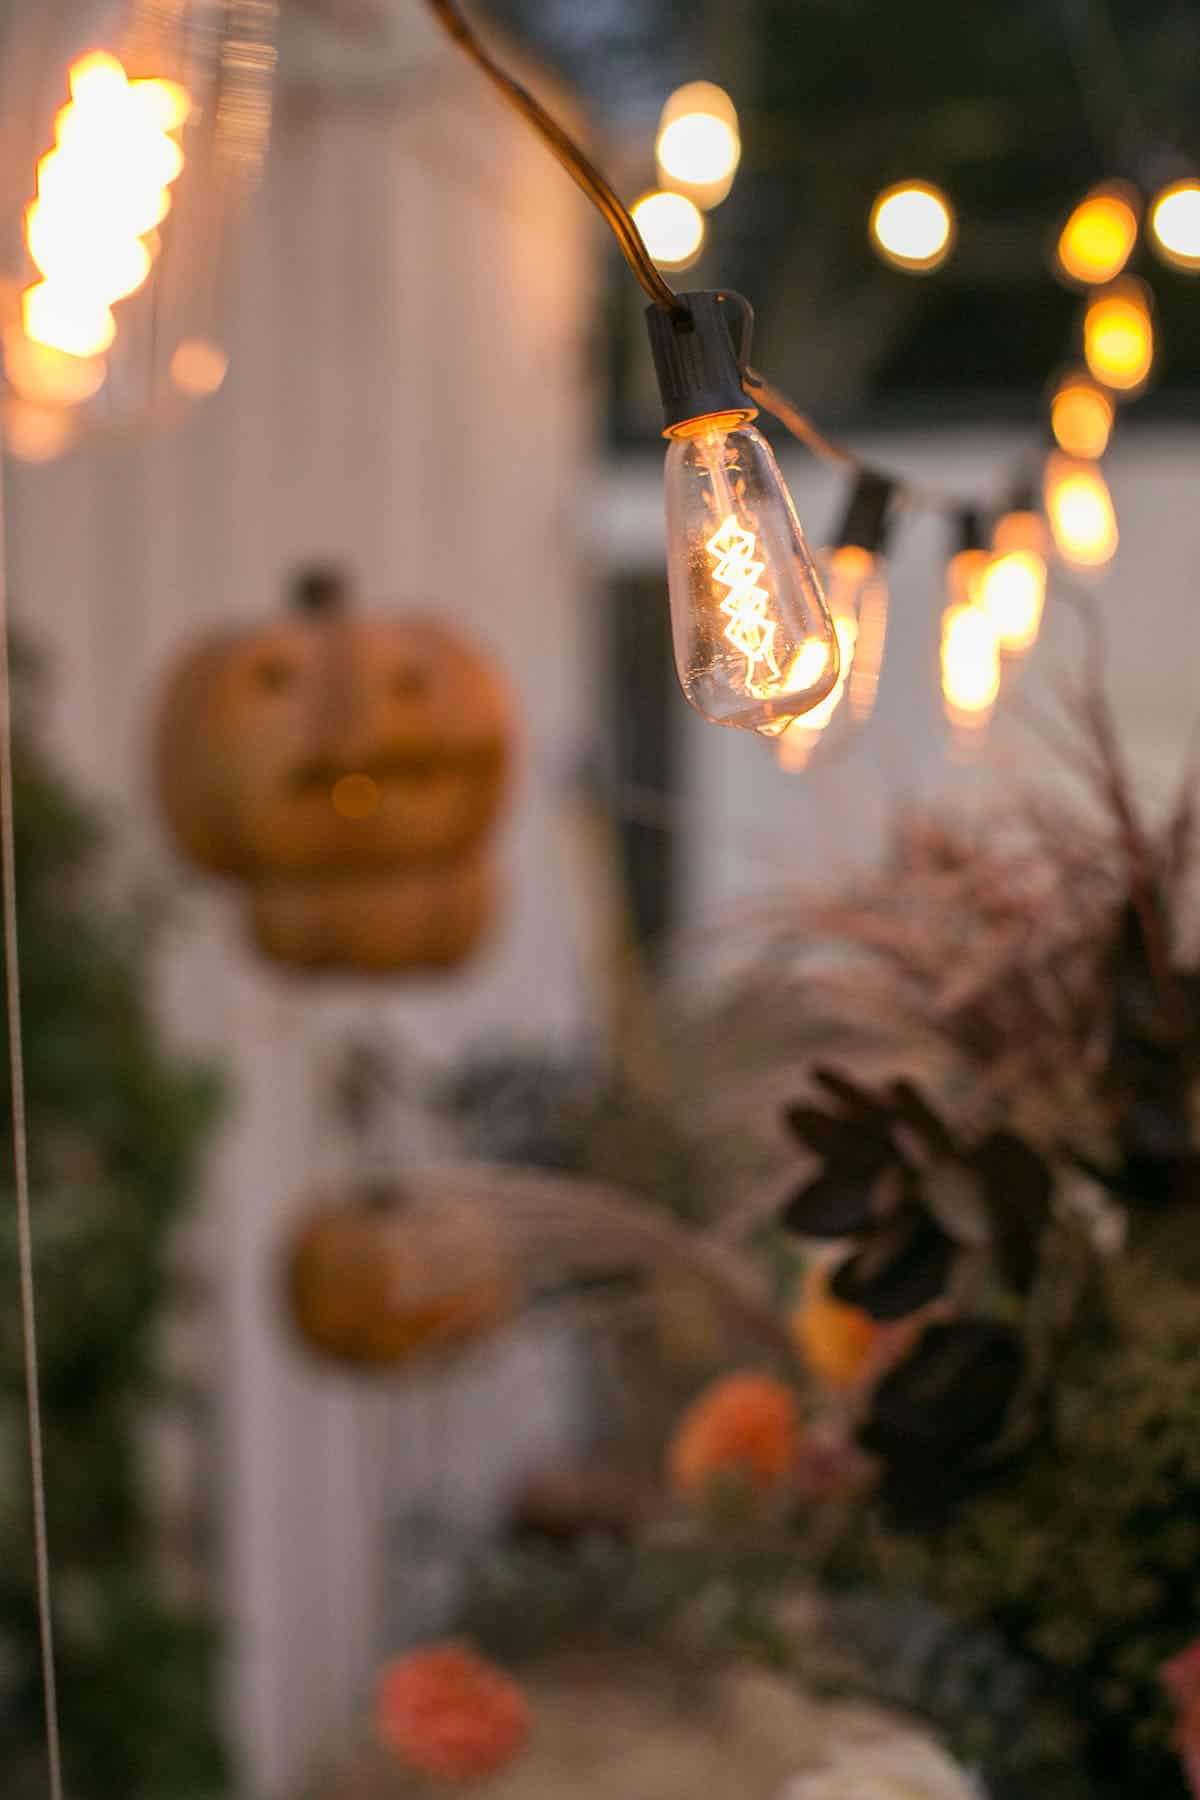 market lights dimmed at a Halloween party